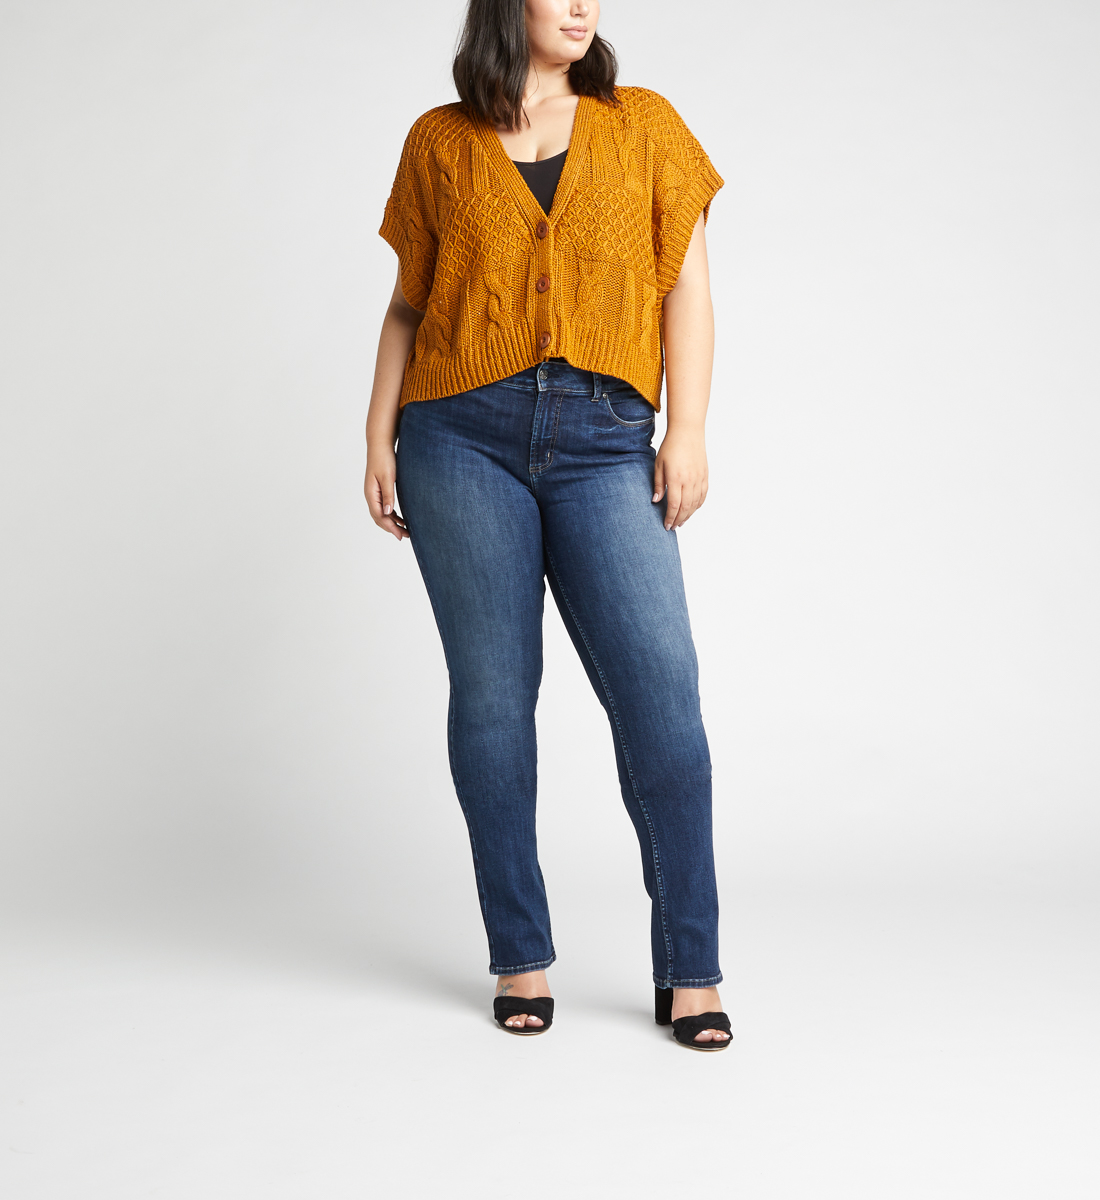 Most Wanted Mid Rise Skinny Bootcut Plus Size Jeans Alt Image 1